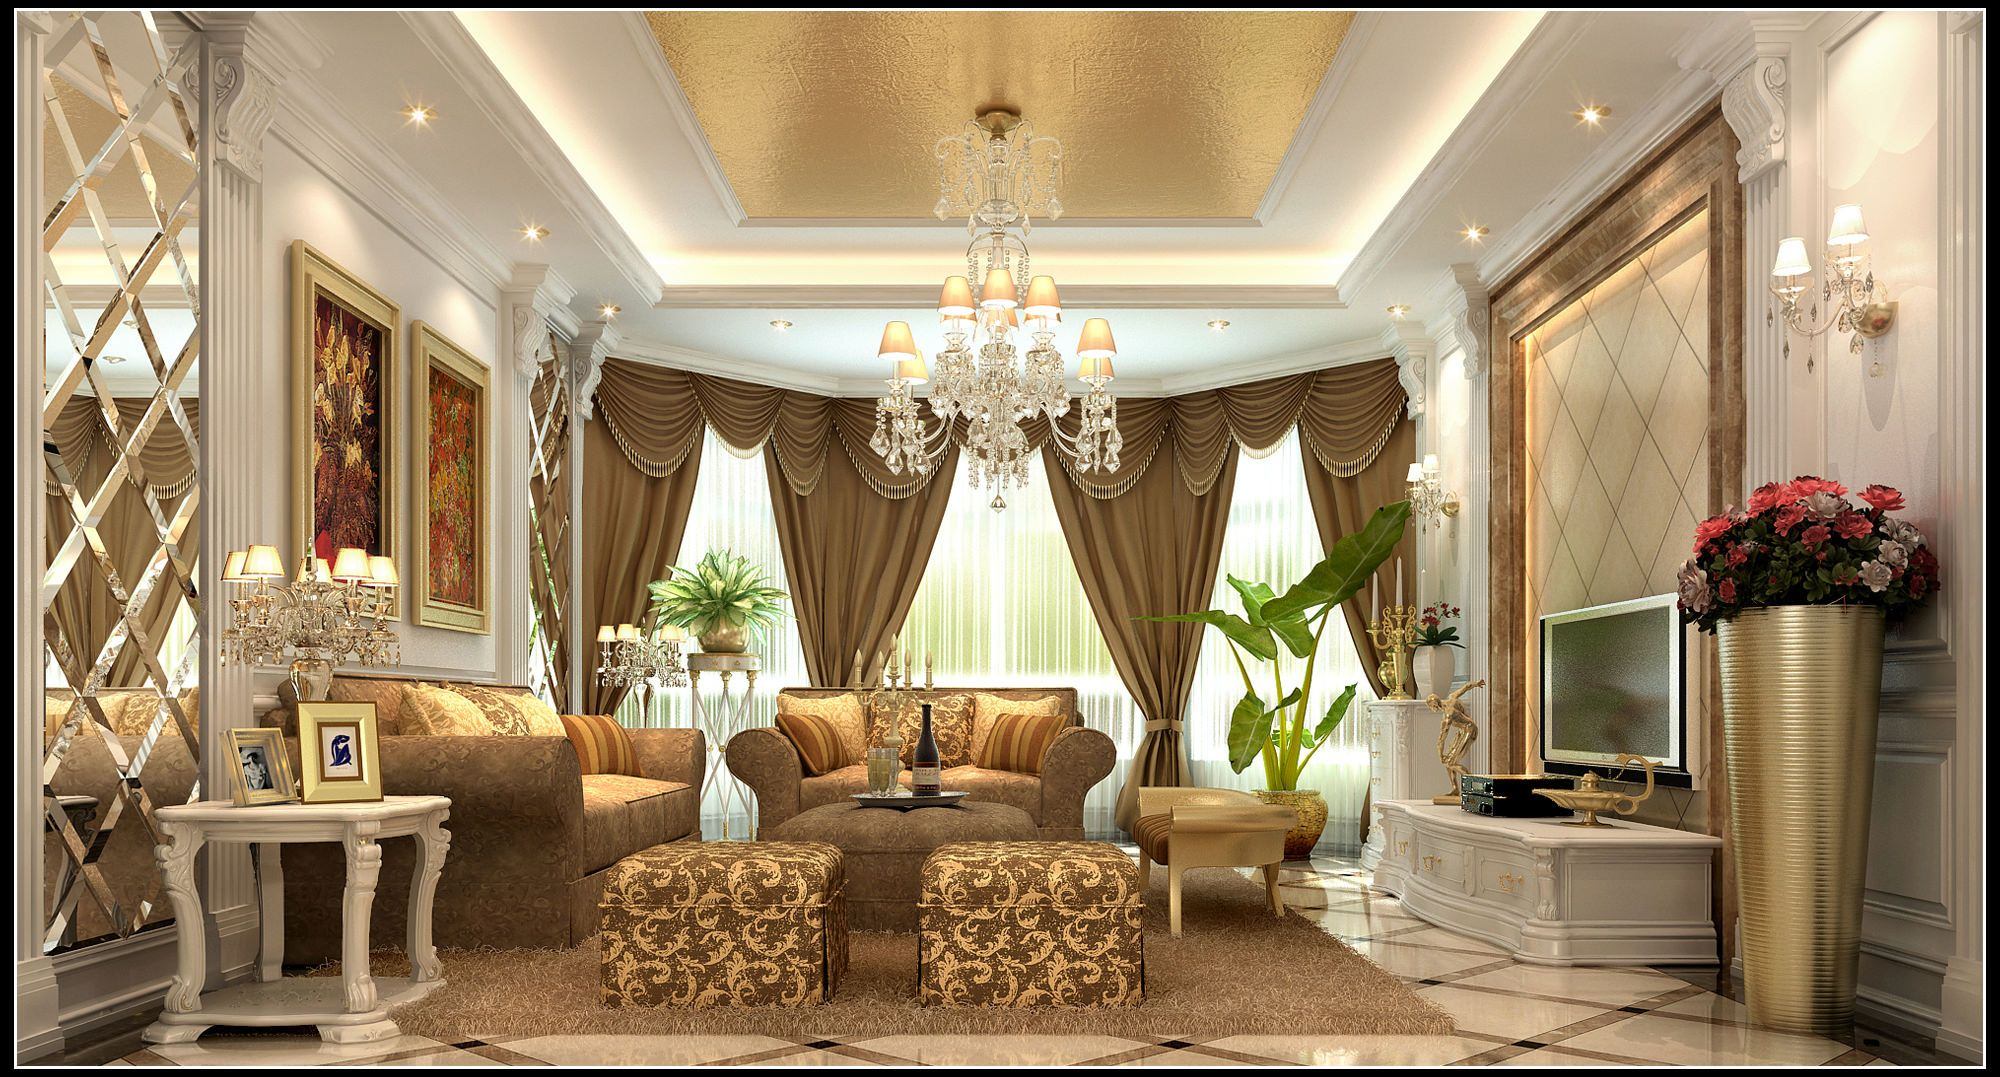 Luxurious Living Room With Curtains Luxury Curtains Living Room Luxury Living Room Chandelier In Living Room